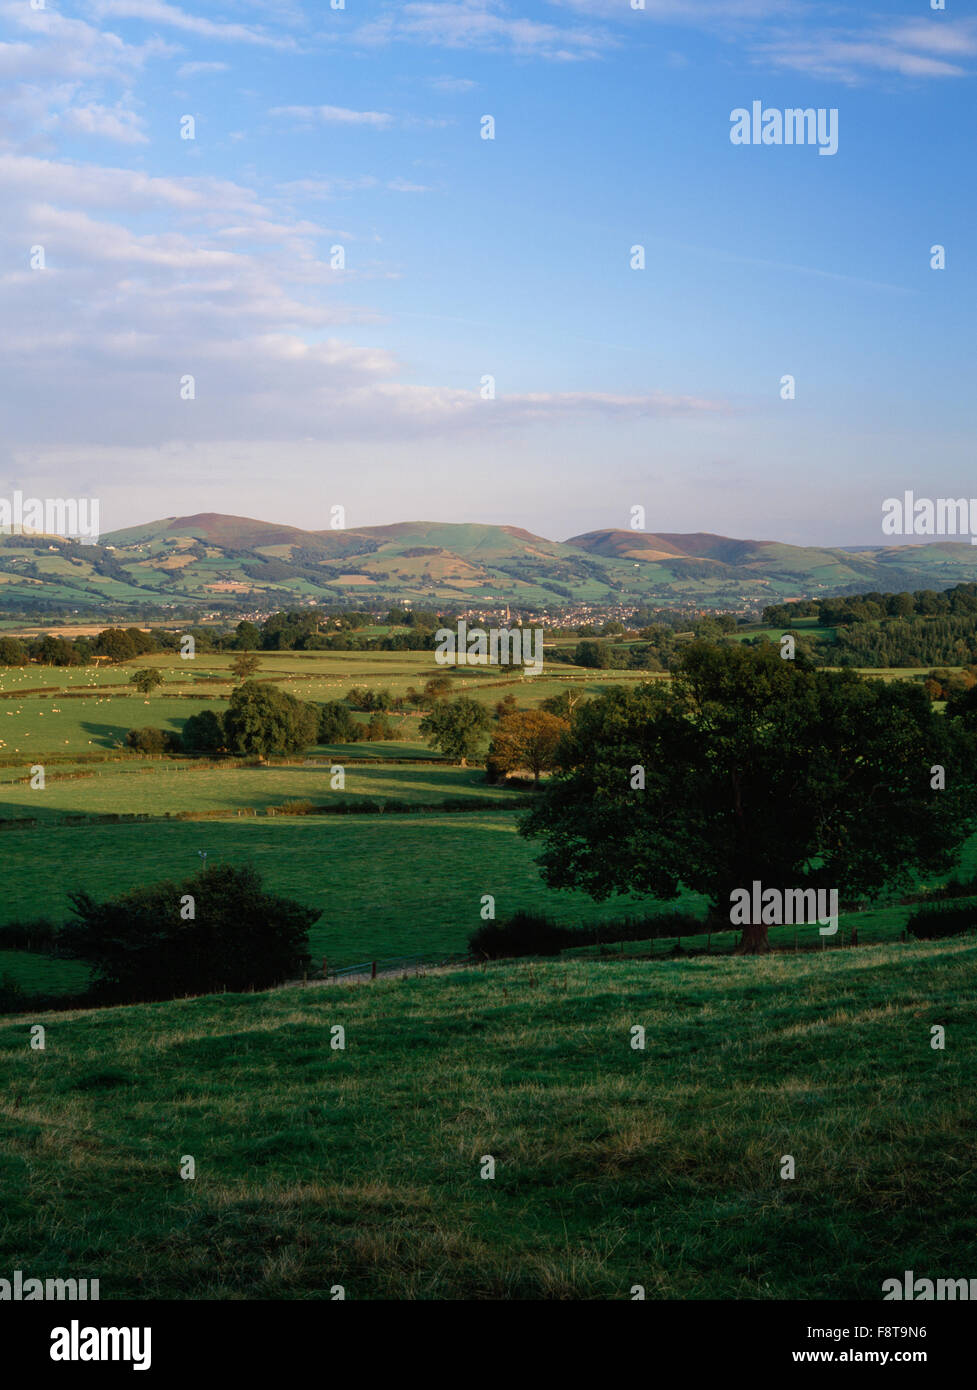 View SE from near Rhewl across the Vale of Clwyd to Ruthin & the southern Clwydian Hills which form the boundary - Stock Image